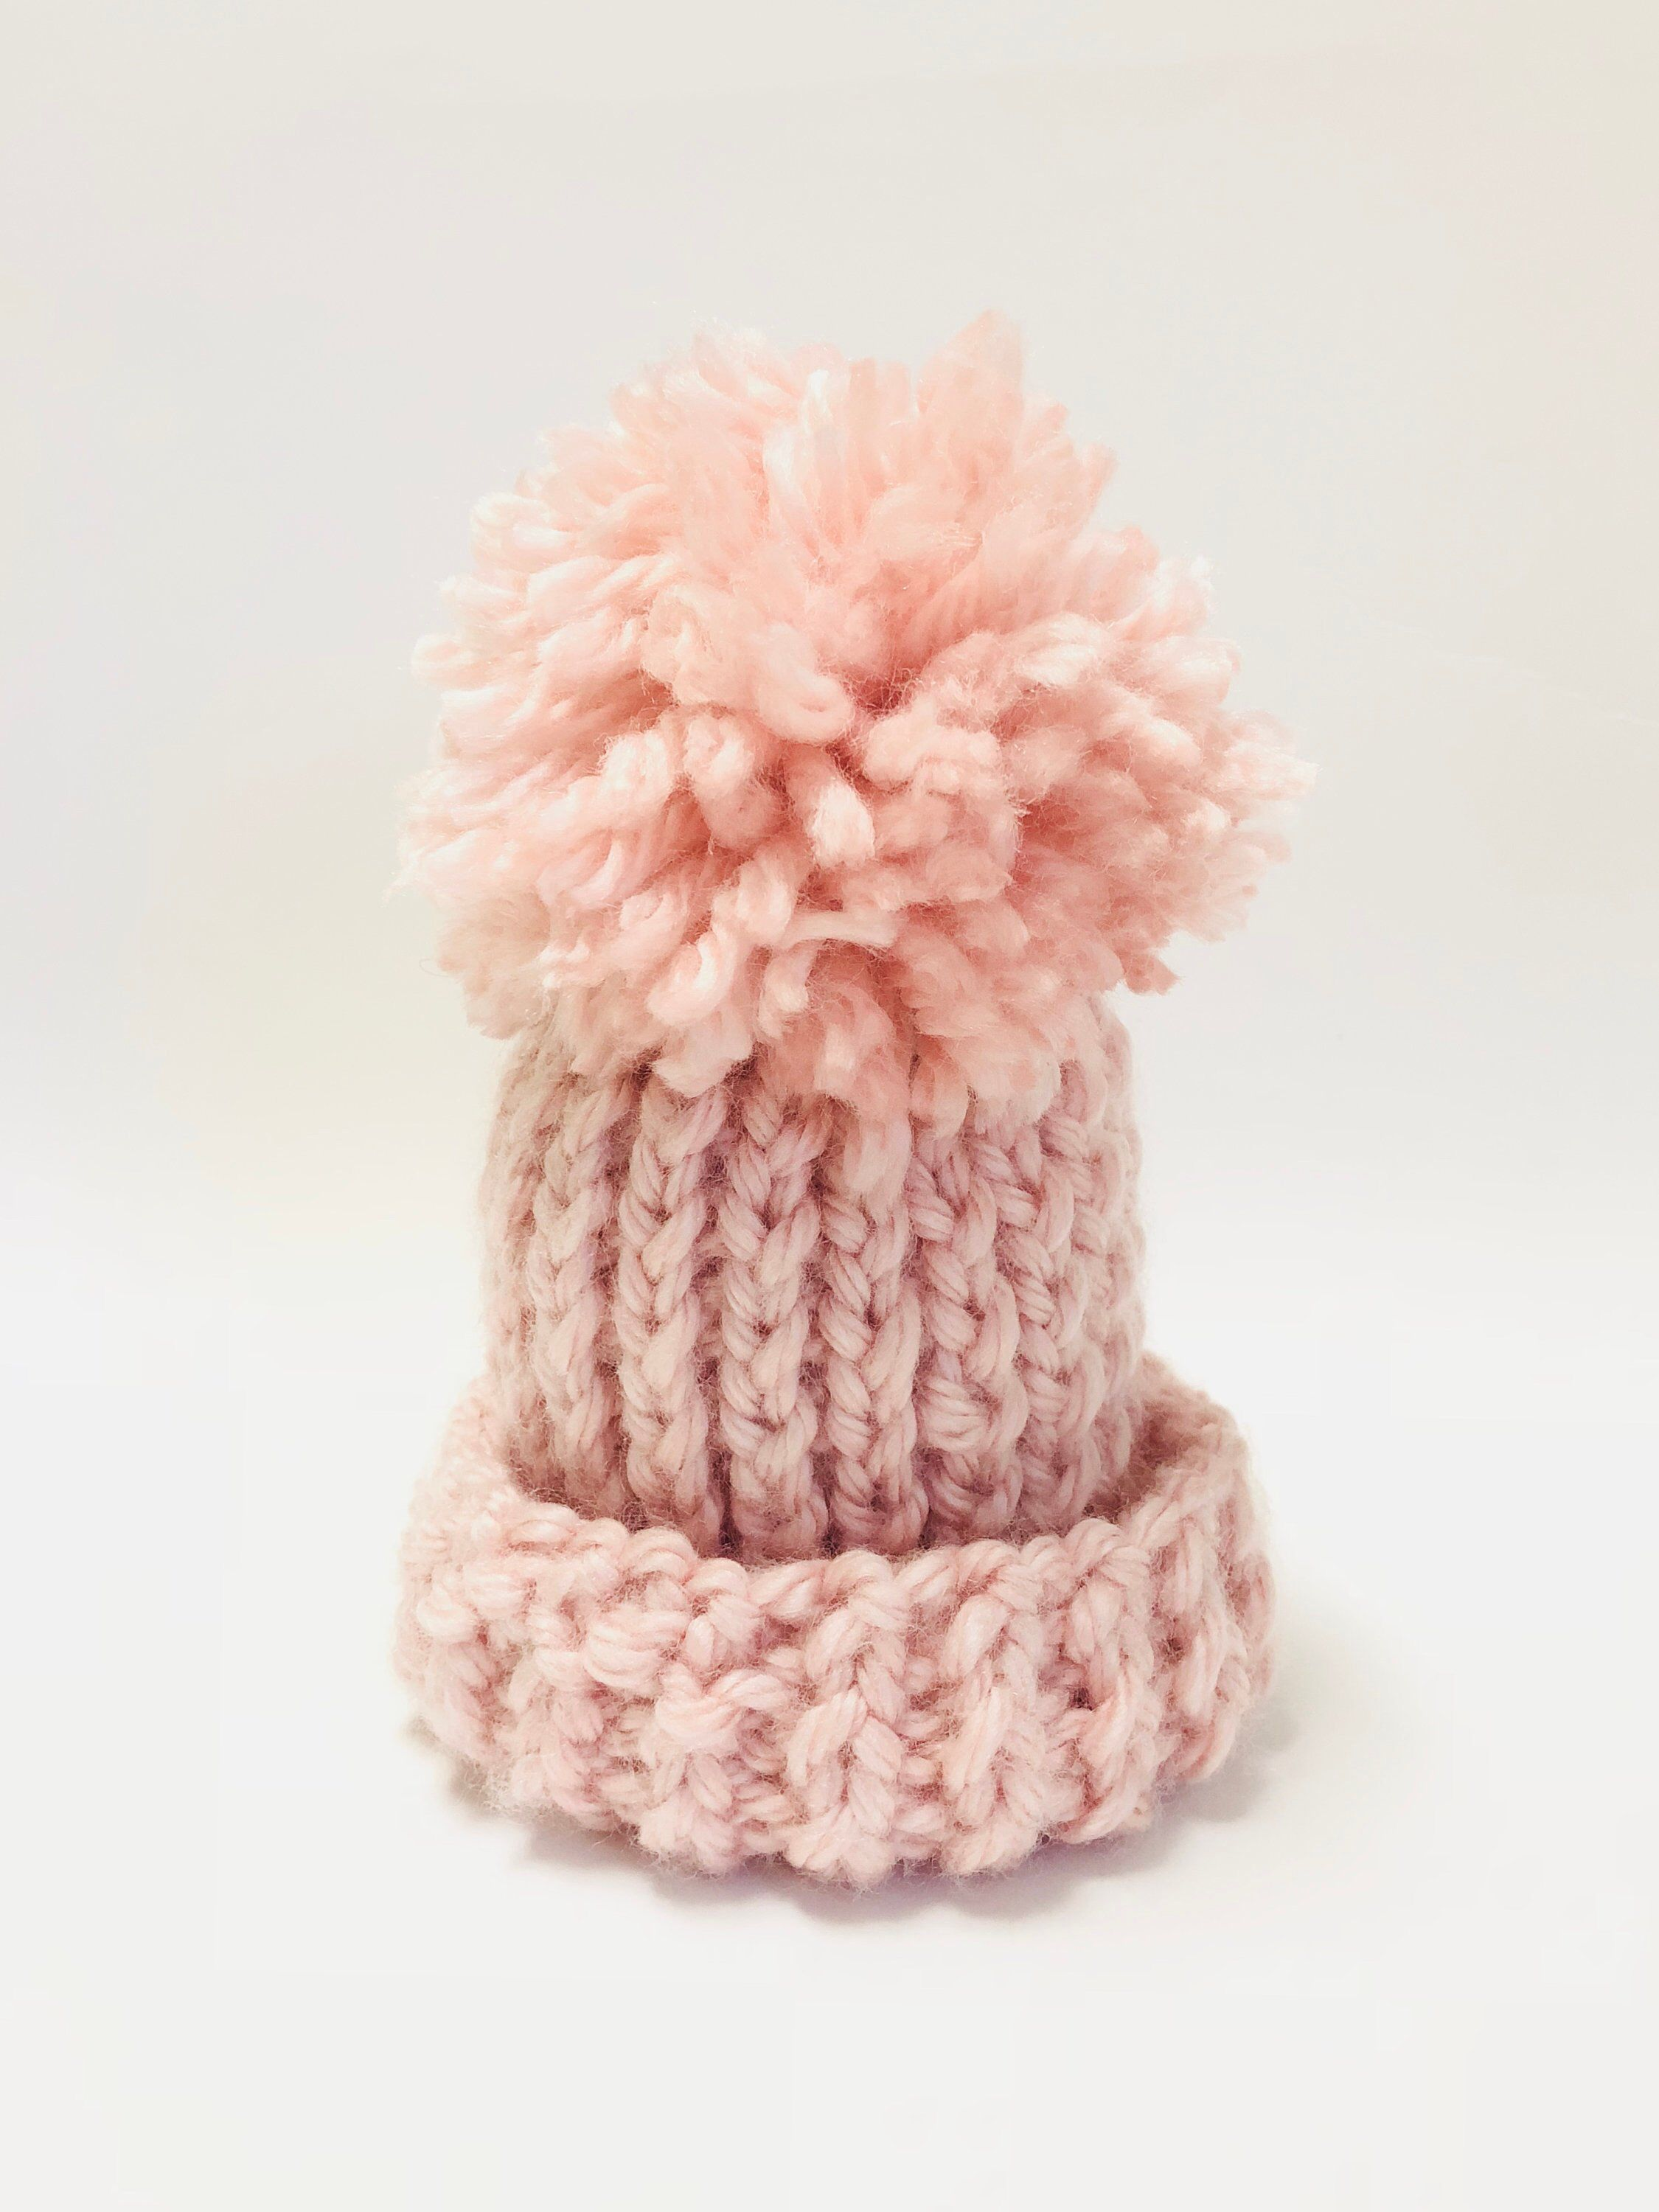 f022a34b94b Excited to share this item from my  etsy shop  Handmade Pink Super Thick  Chunky Vegan Knitted Newborn Infant Child Hat With Pom Pom Custom Unisex